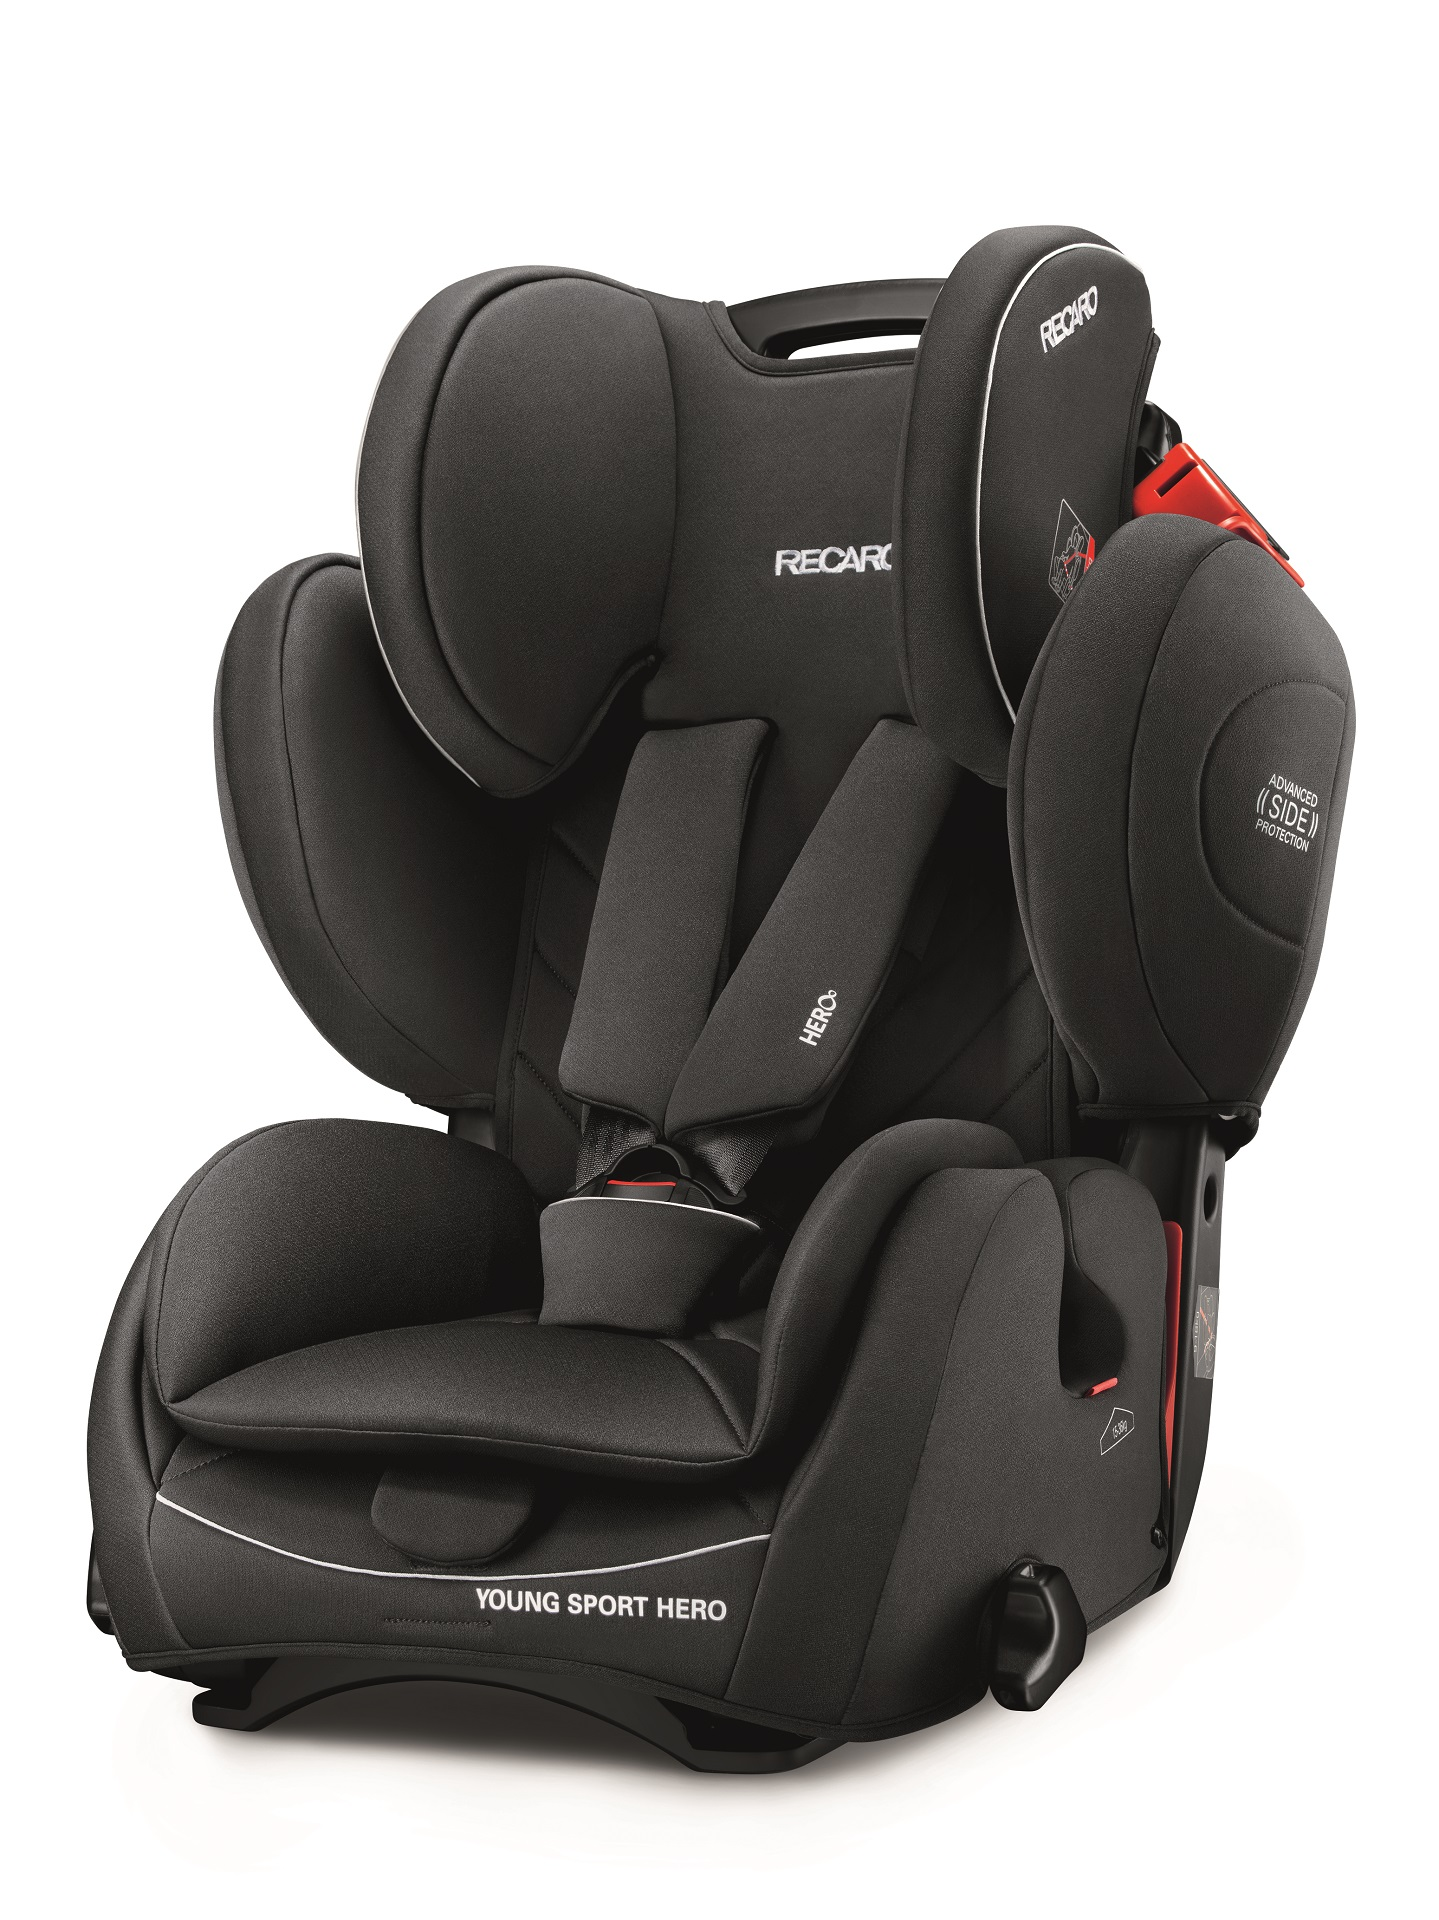 Best Booster Seats 2020.Recaro Child Car Seat Young Sport Hero